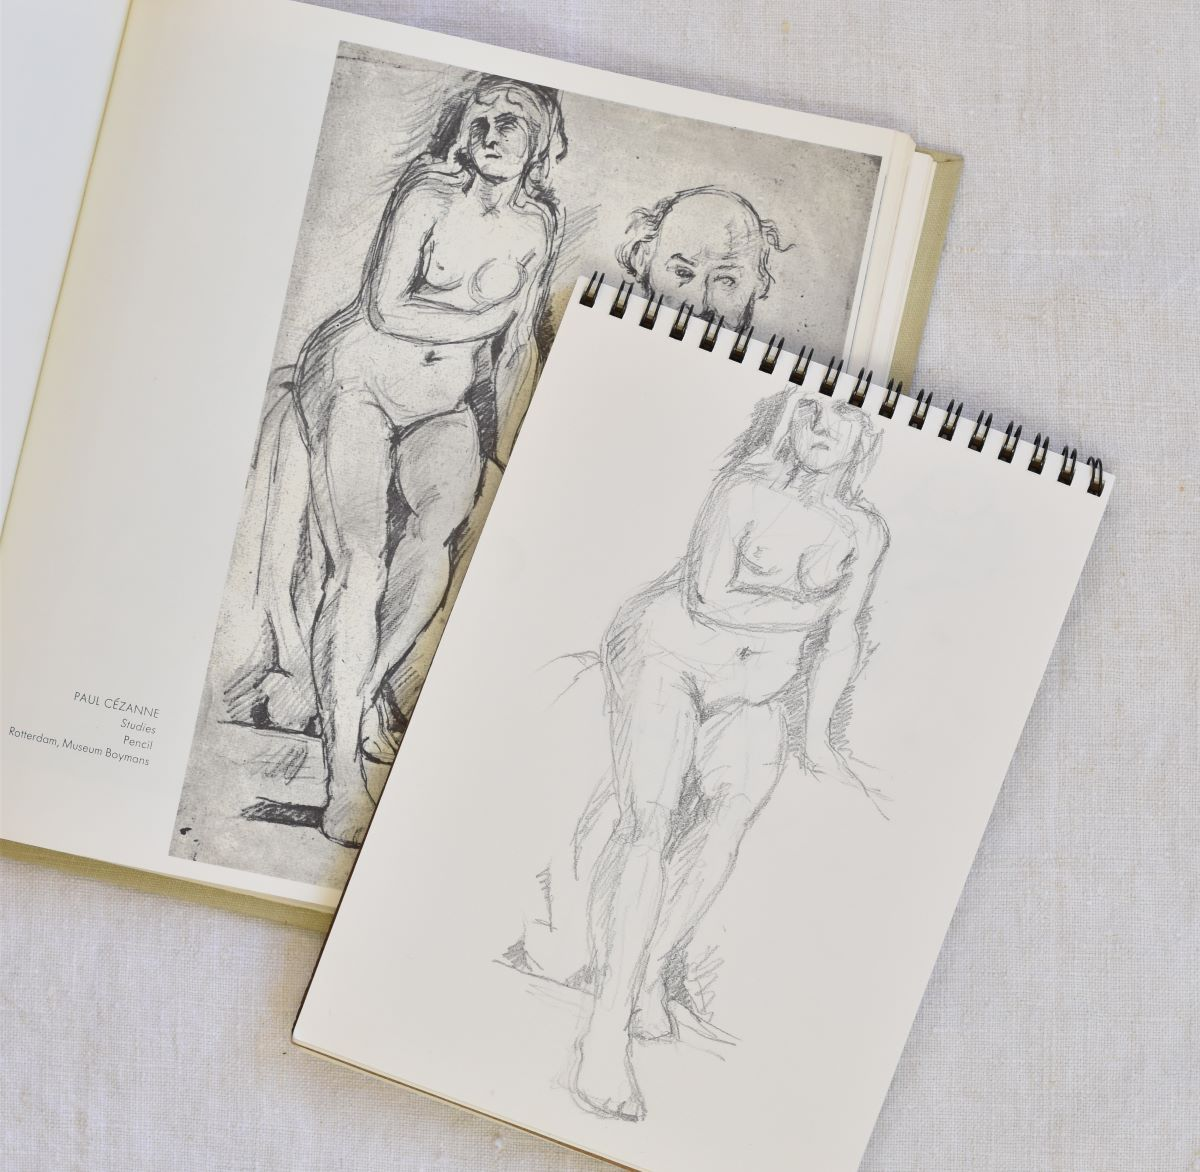 Copy of a Cezanne drawing.